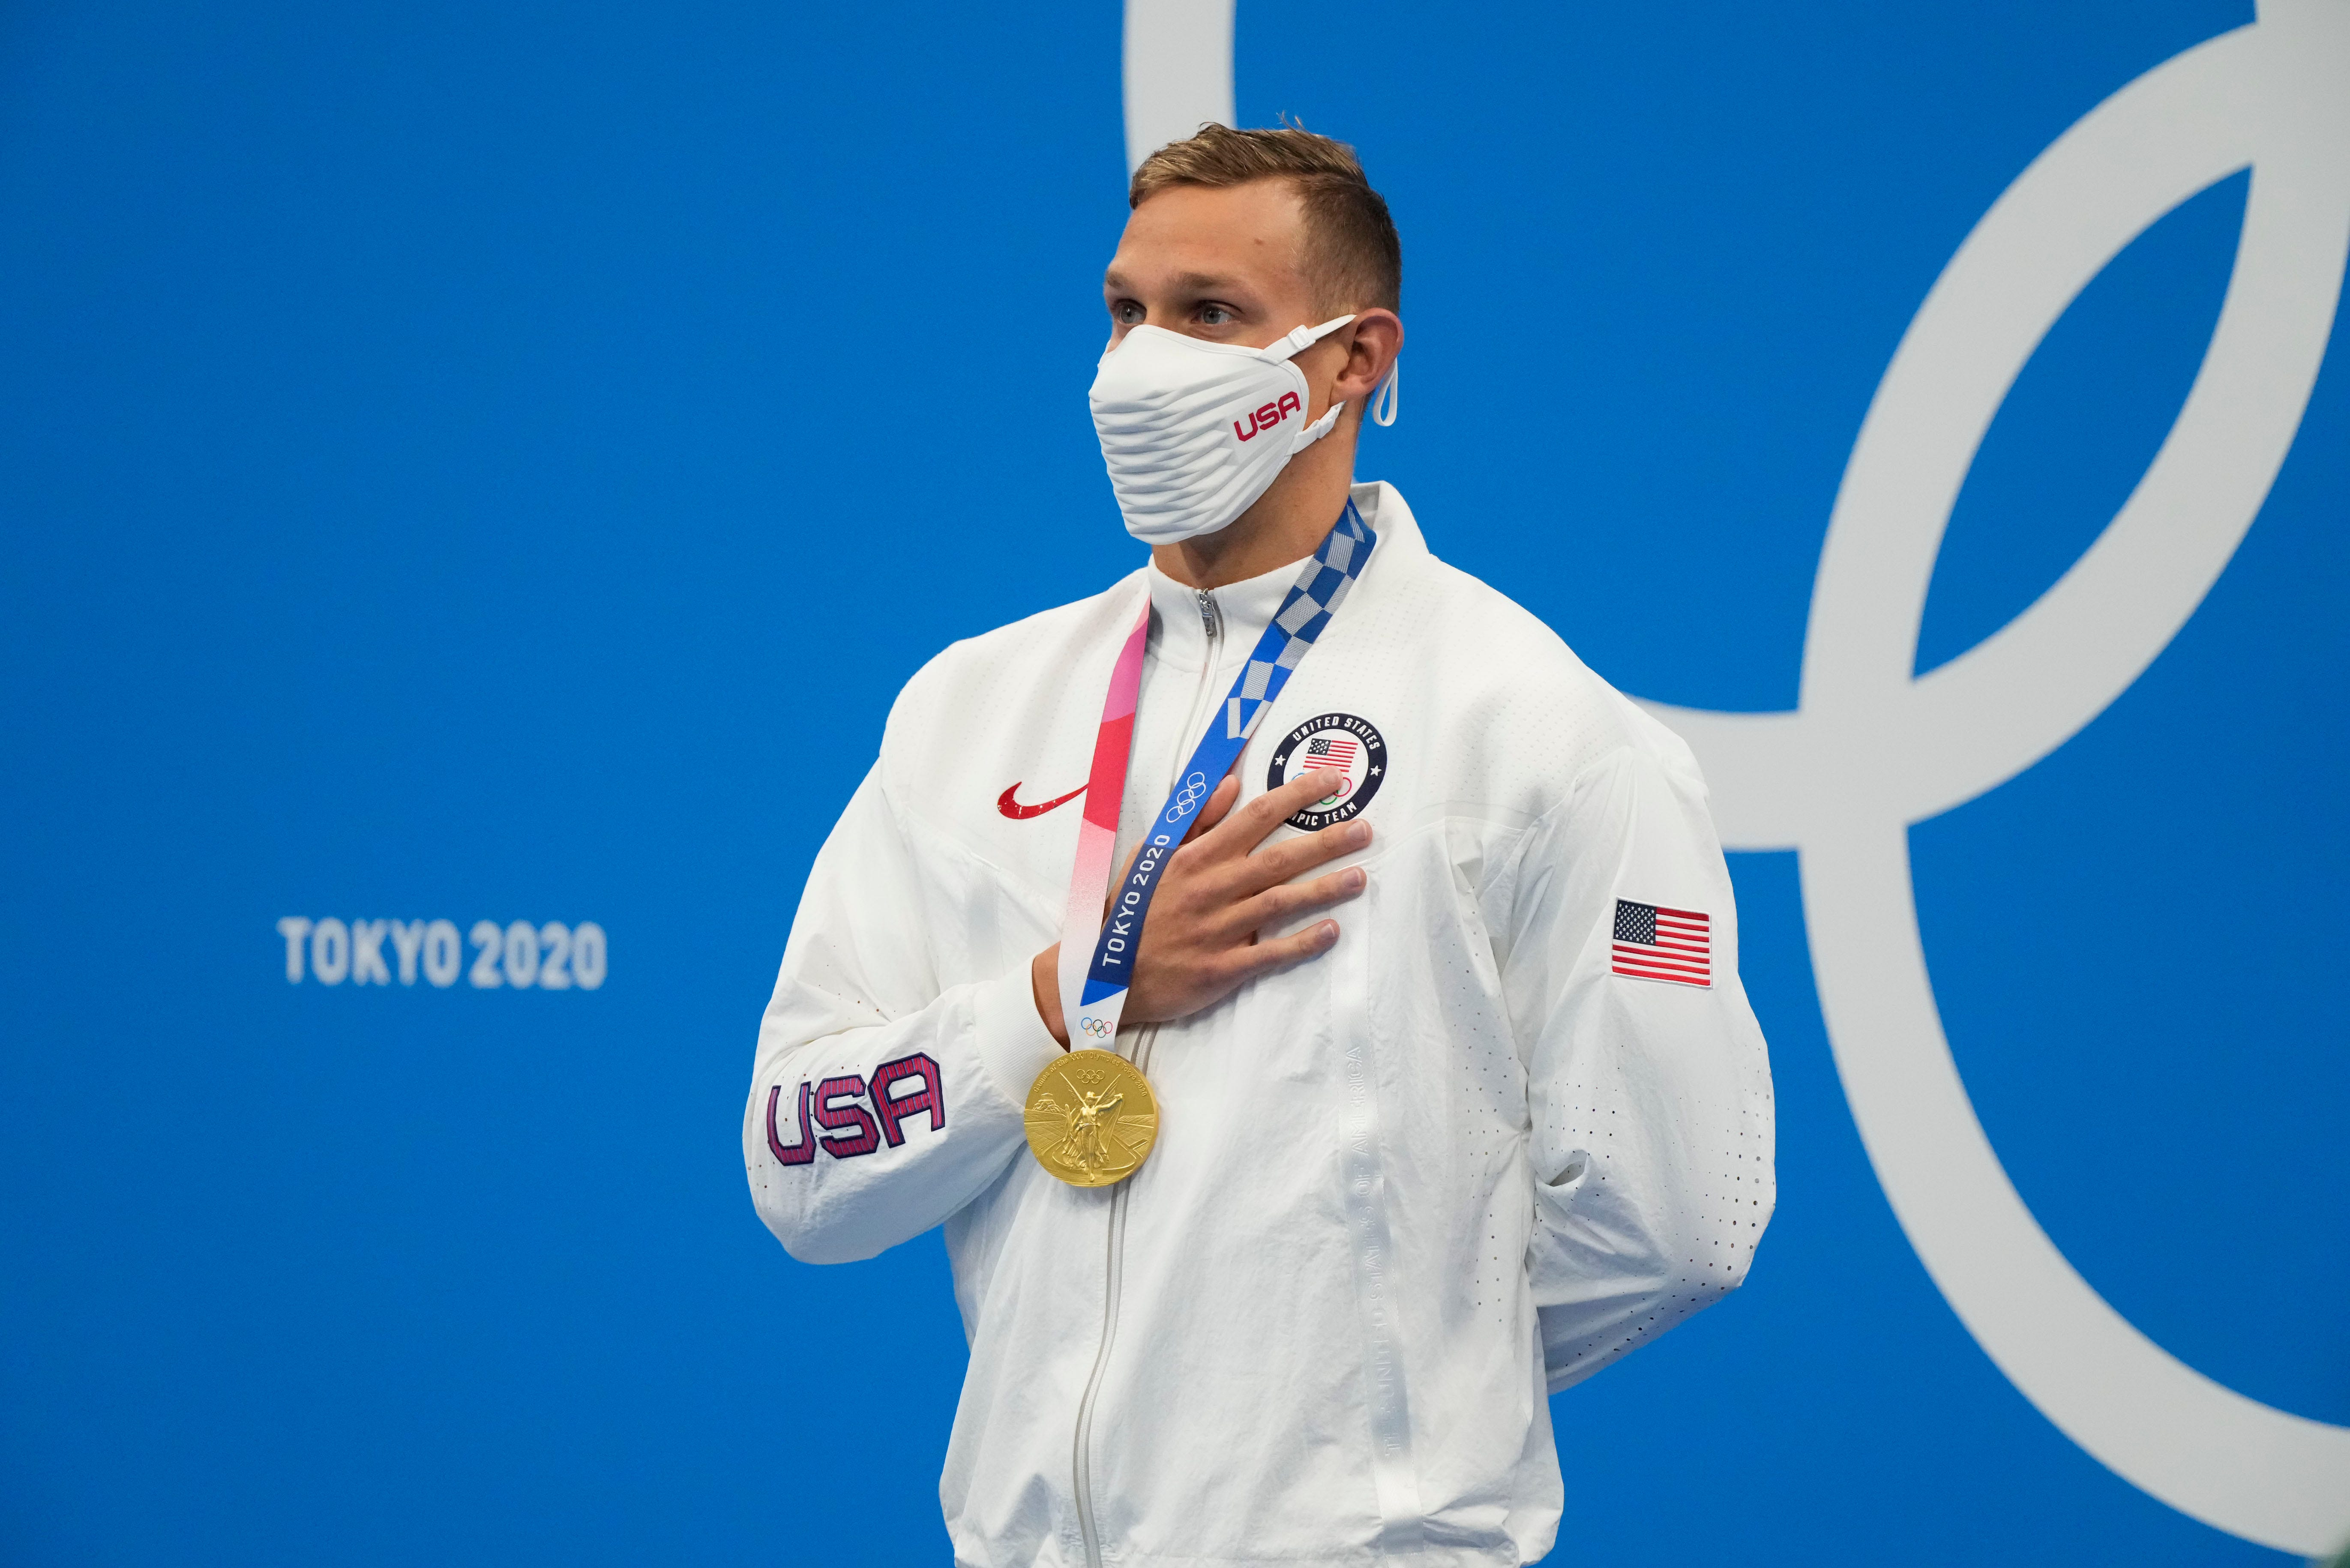 Tokyo Olympics live updates: Caeleb Dressel, Katie Ledecky win gold; Simone Biles out of two event finals